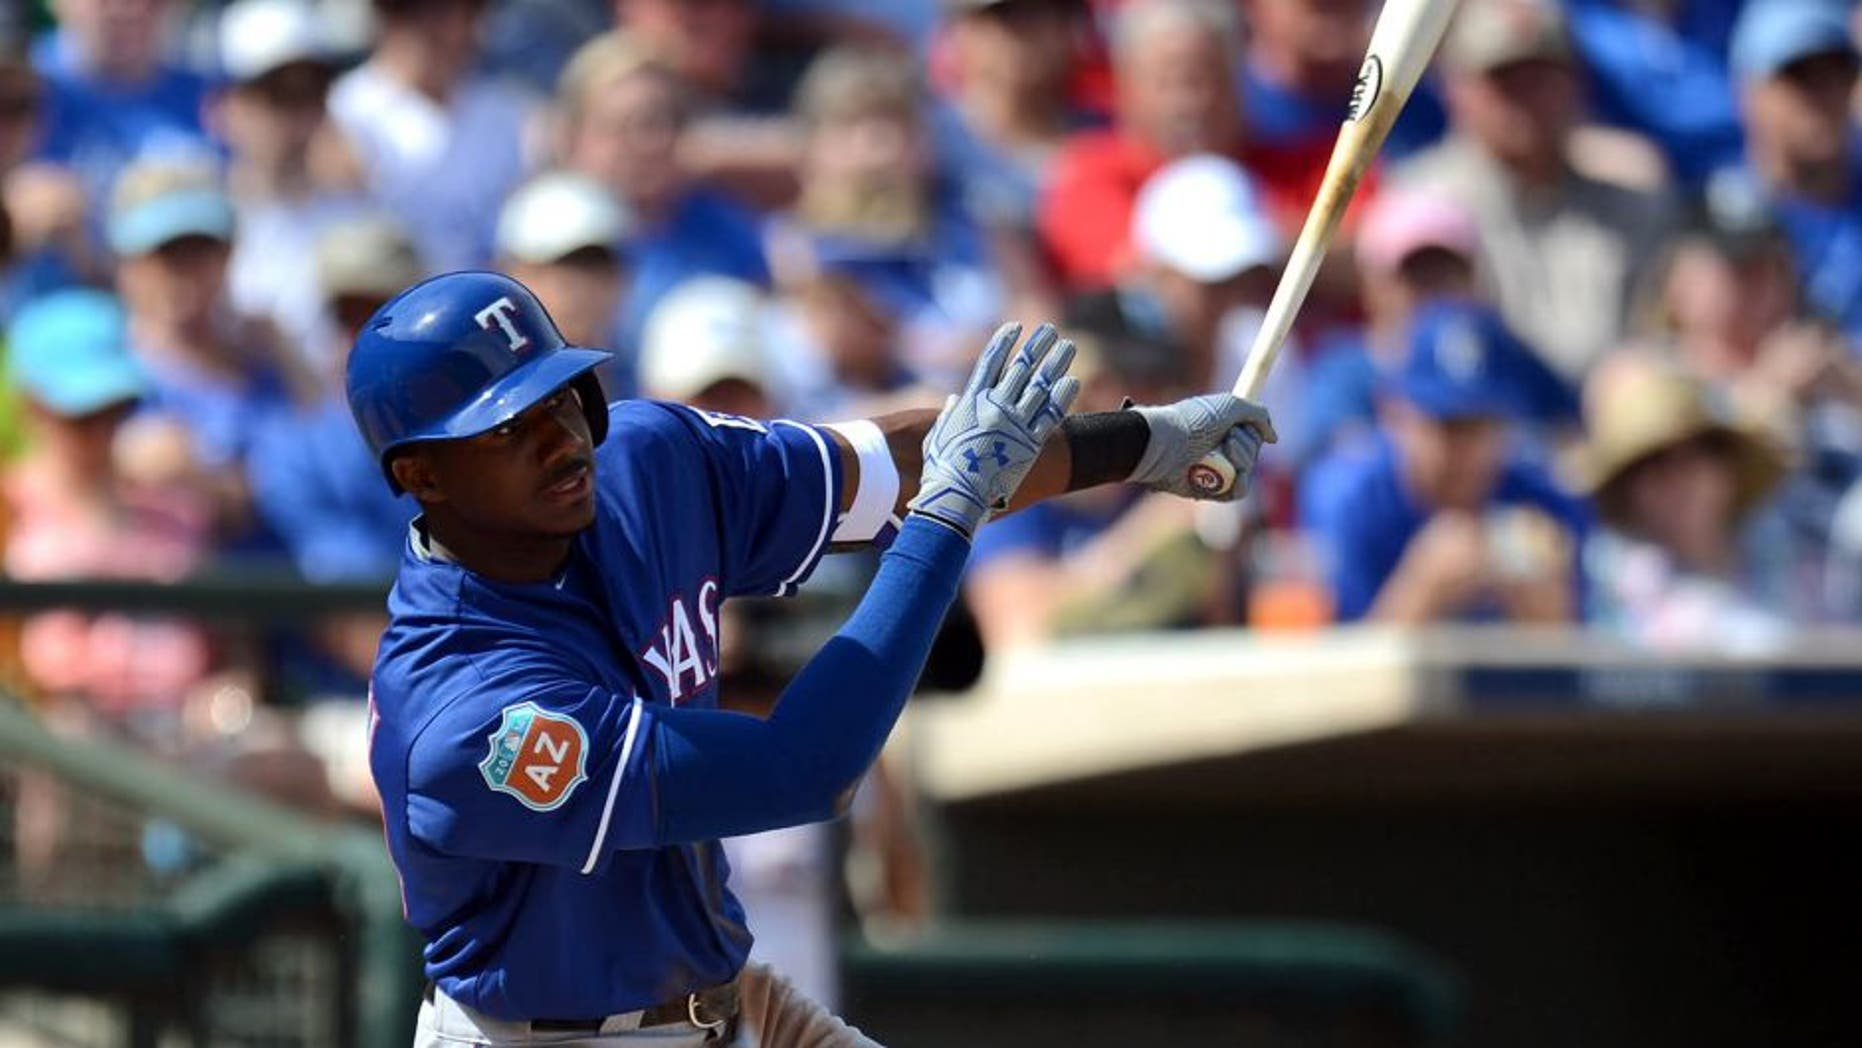 Mar 3, 2016; Surprise, AZ, USA; Texas Rangers center fielder Lewis Brinson (70) swings at a pitch during the second inning against the Kansas City Royals at Surprise Stadium. Mandatory Credit: Joe Camporeale-USA TODAY Sports